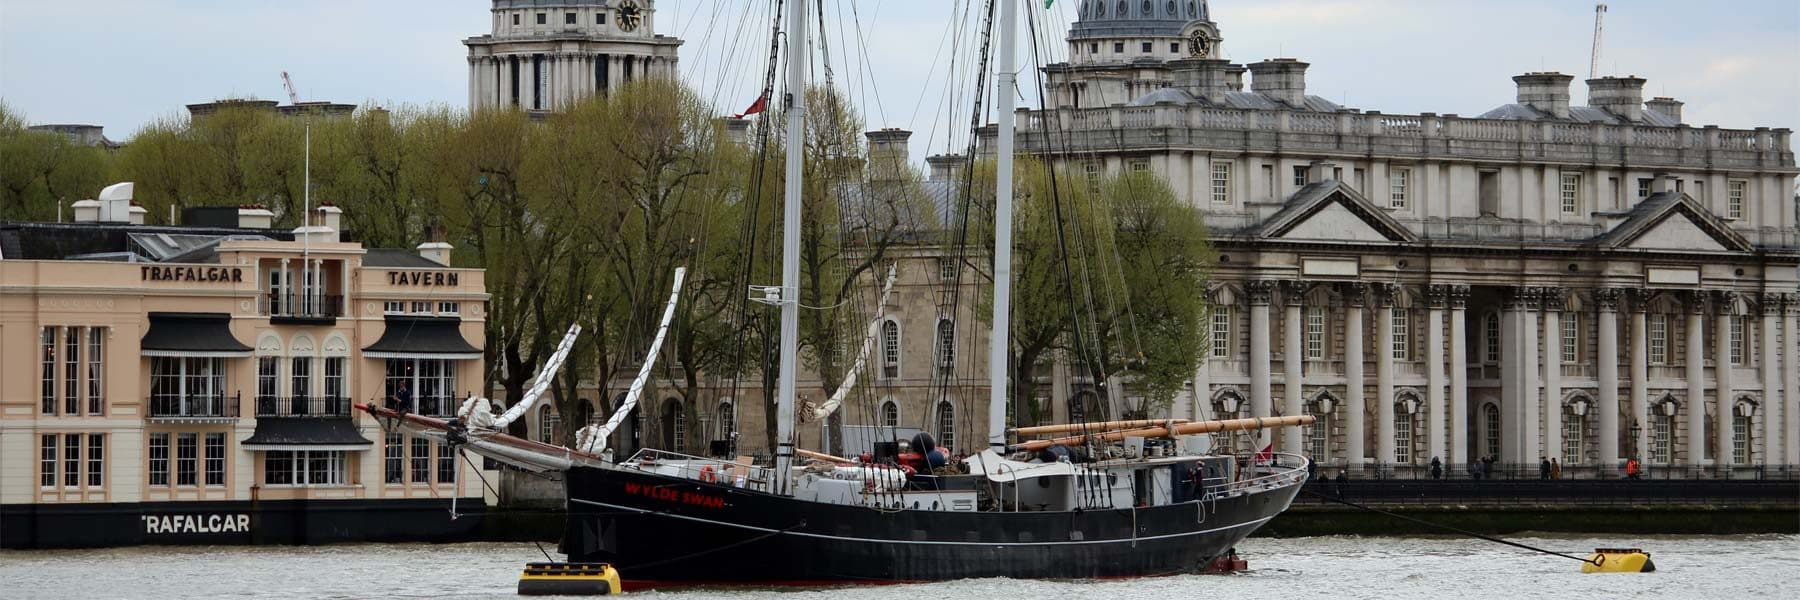 Tall Ship Wylde Swan moored in-front of the Old Royal Naval College